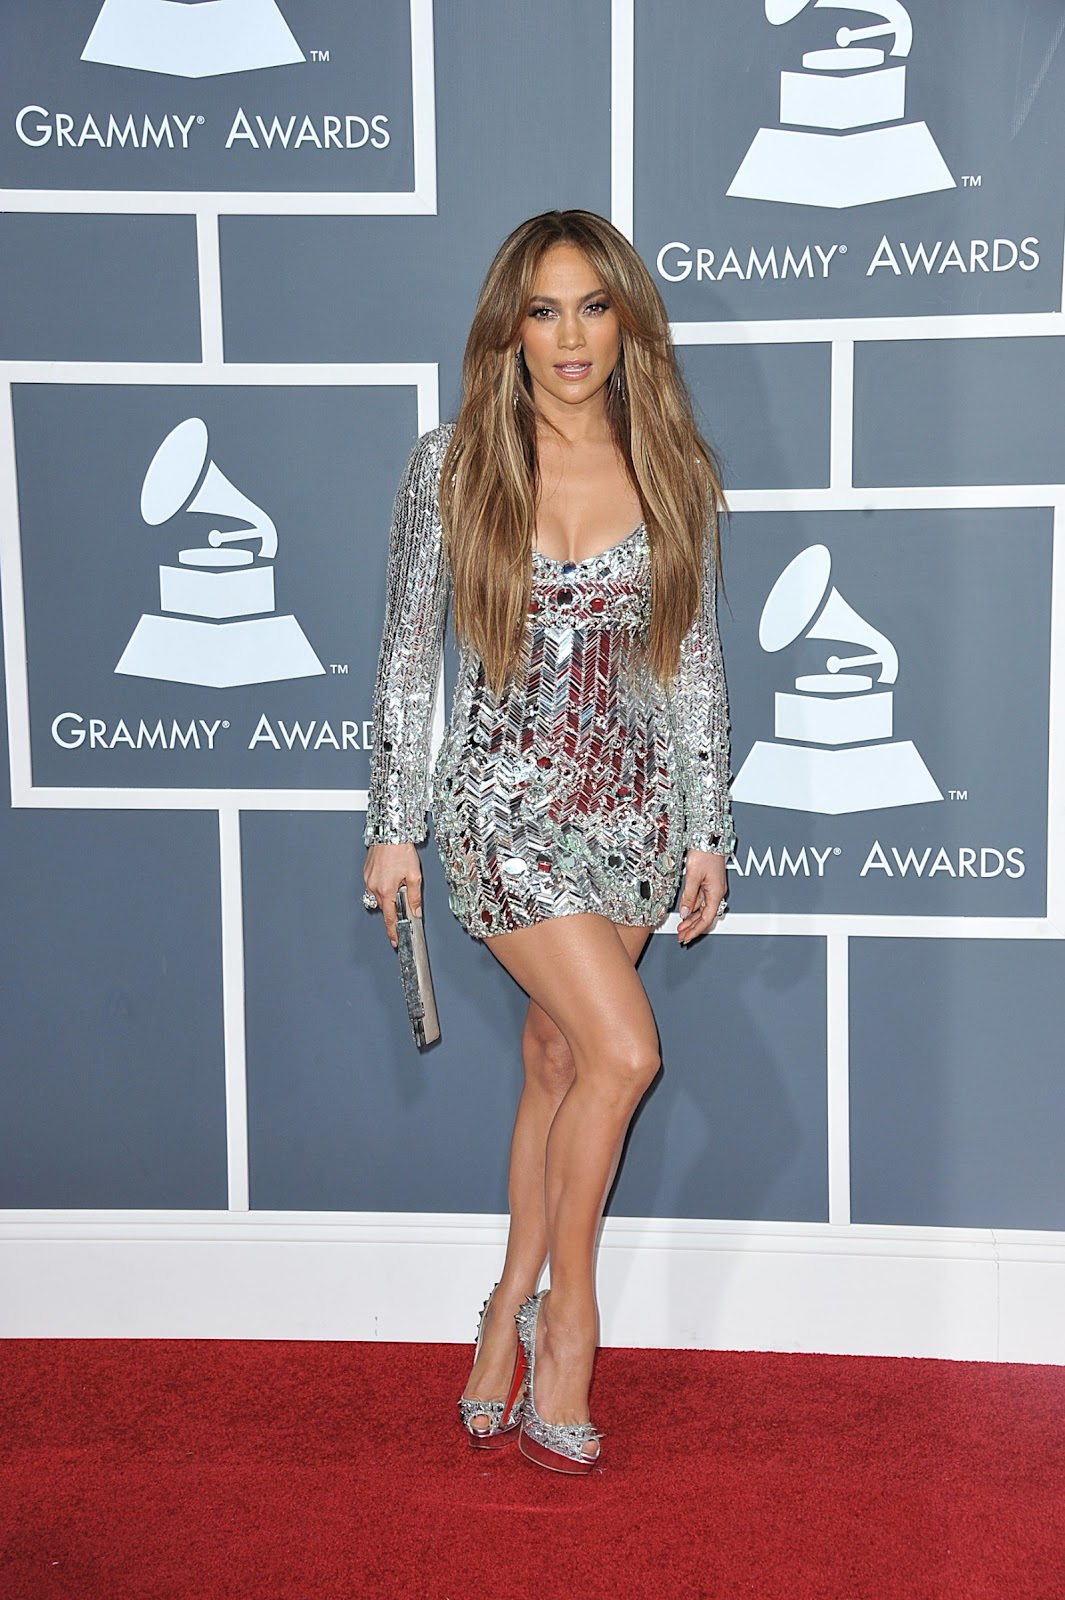 Jennifer Lopez Hot Legs And Cleavage Show At The 53rd Annual Grammy